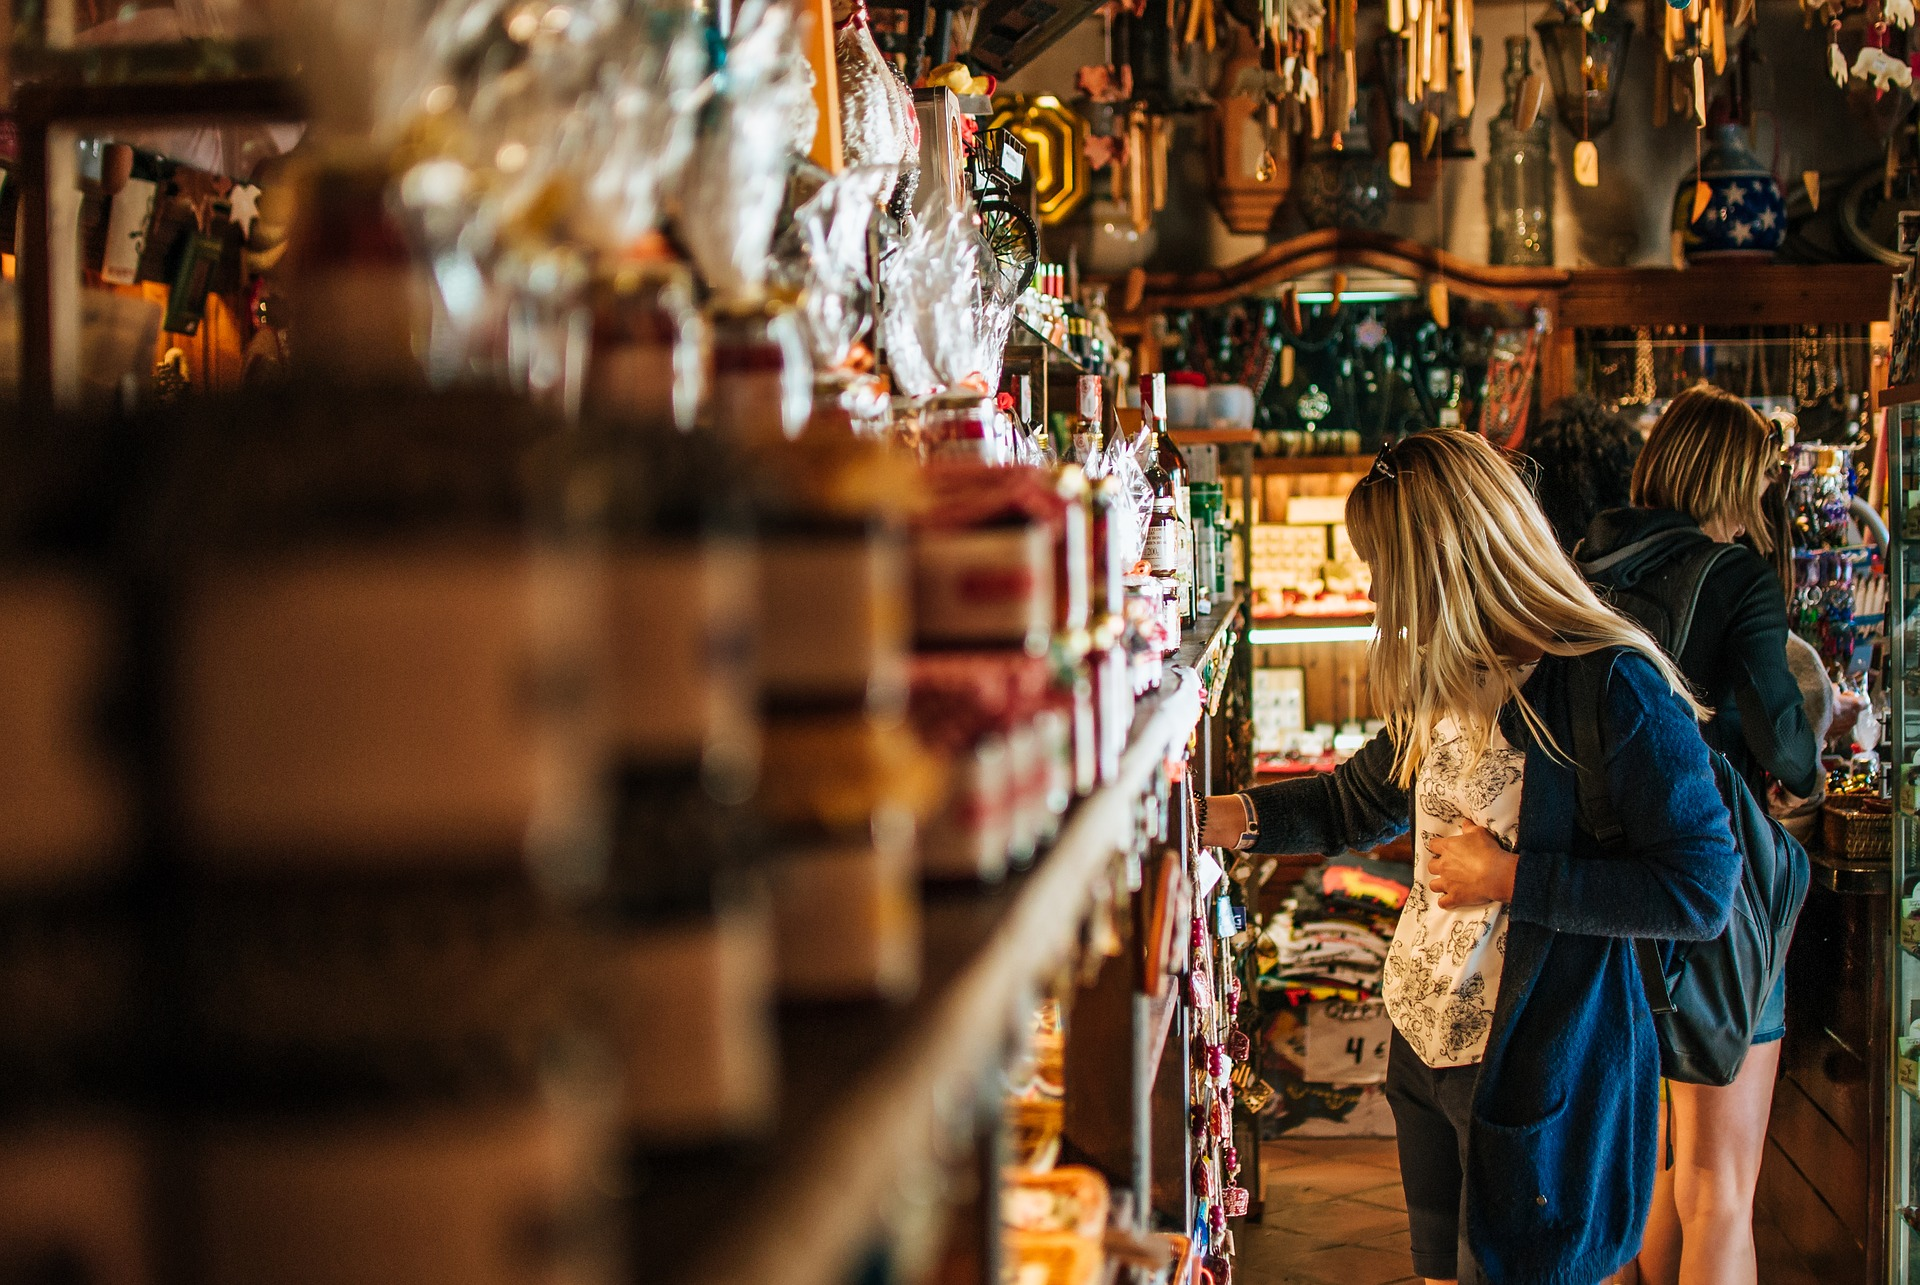 Woman in a shop